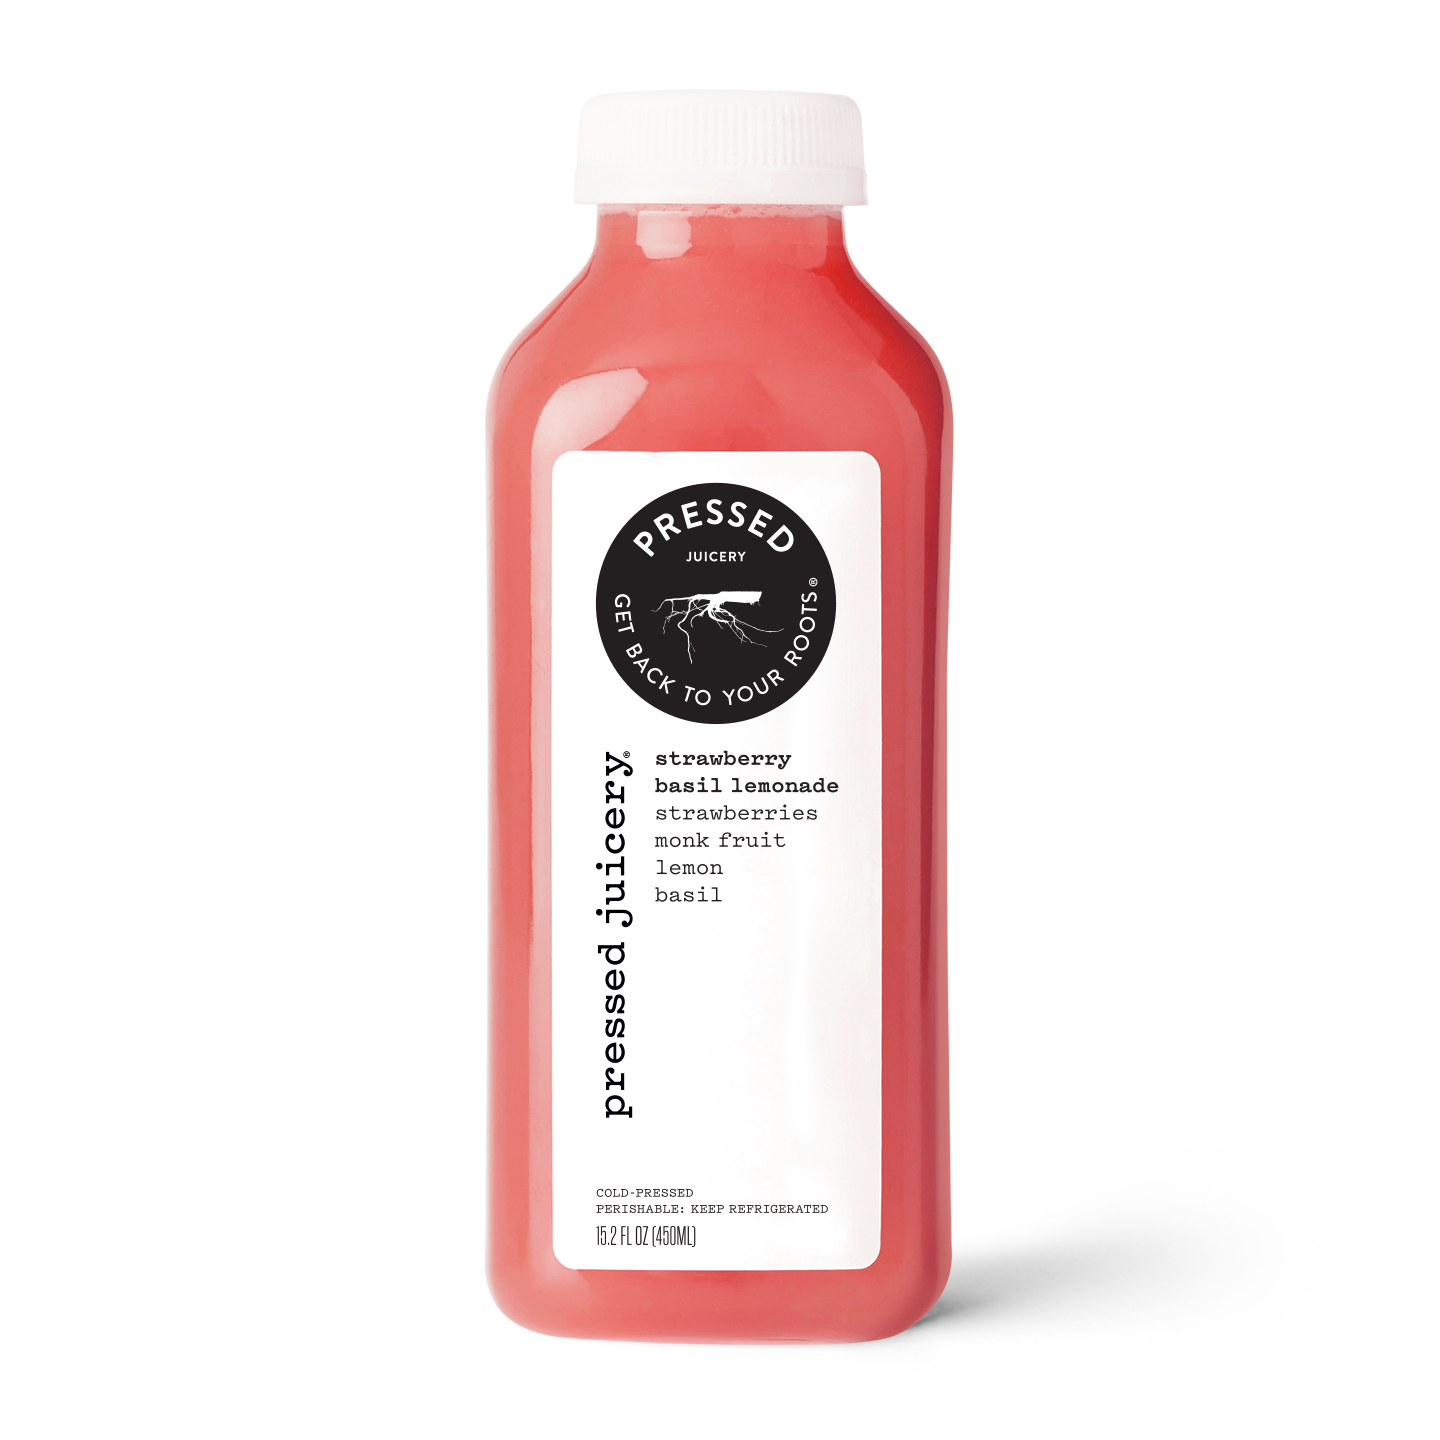 Strawberry Basil Lemonade product image